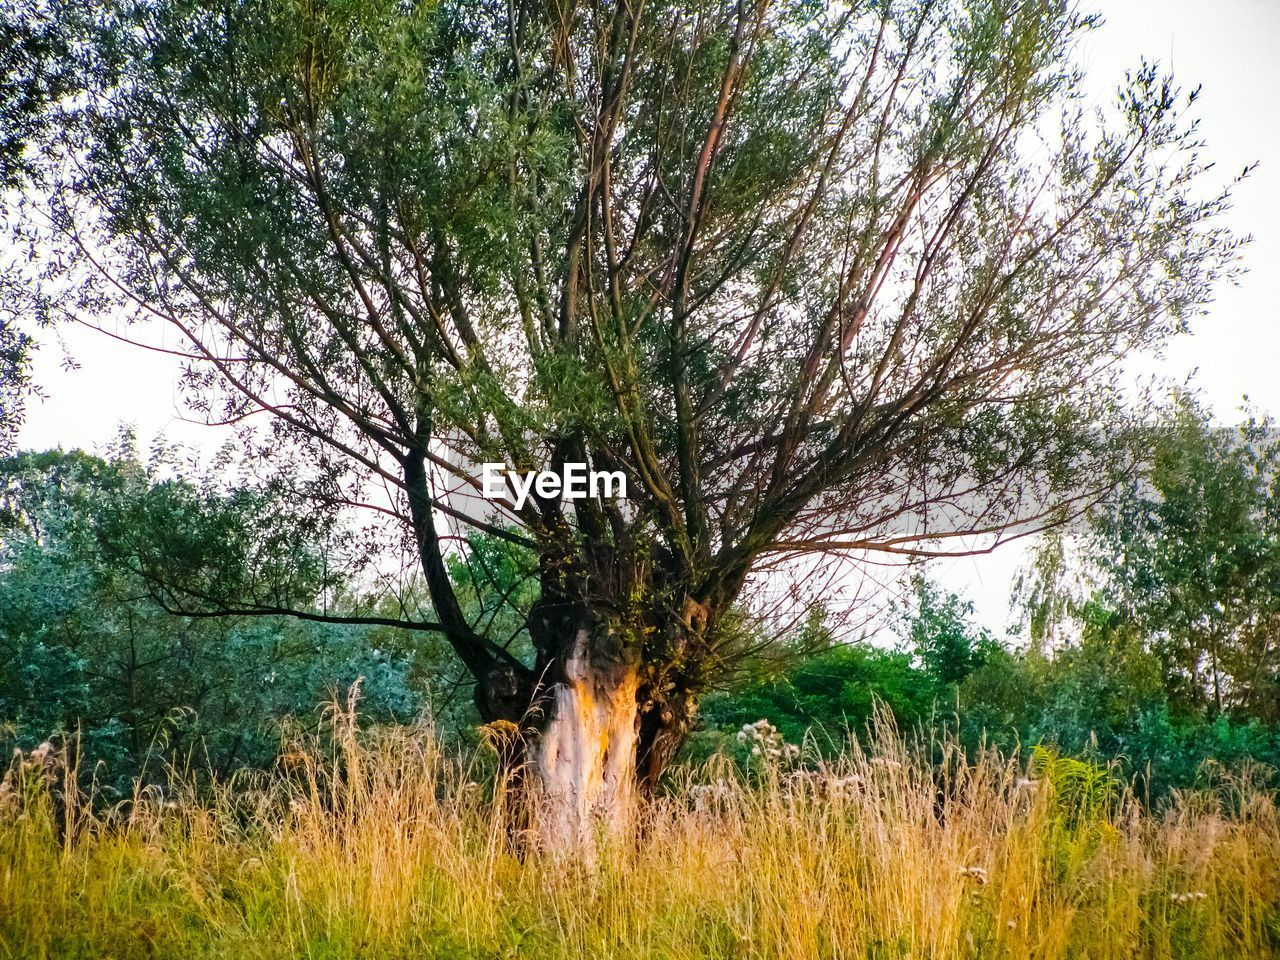 tree, grass, nature, field, outdoors, landscape, growth, day, beauty in nature, branch, forest, no people, sky